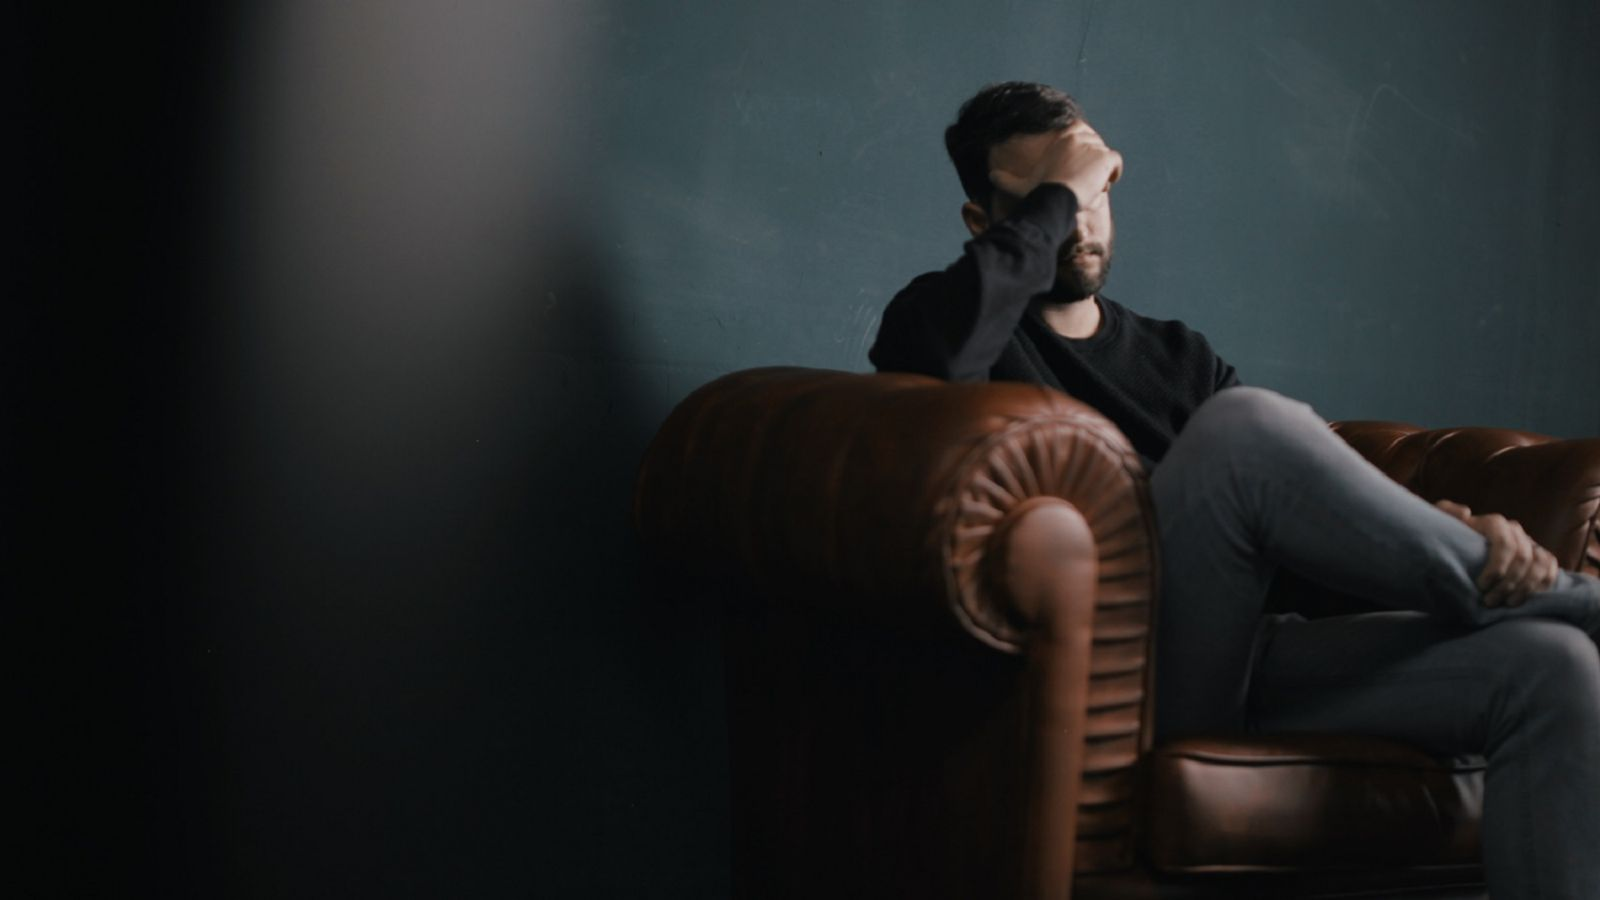 Man sat on brown leather sofa resting head in hands